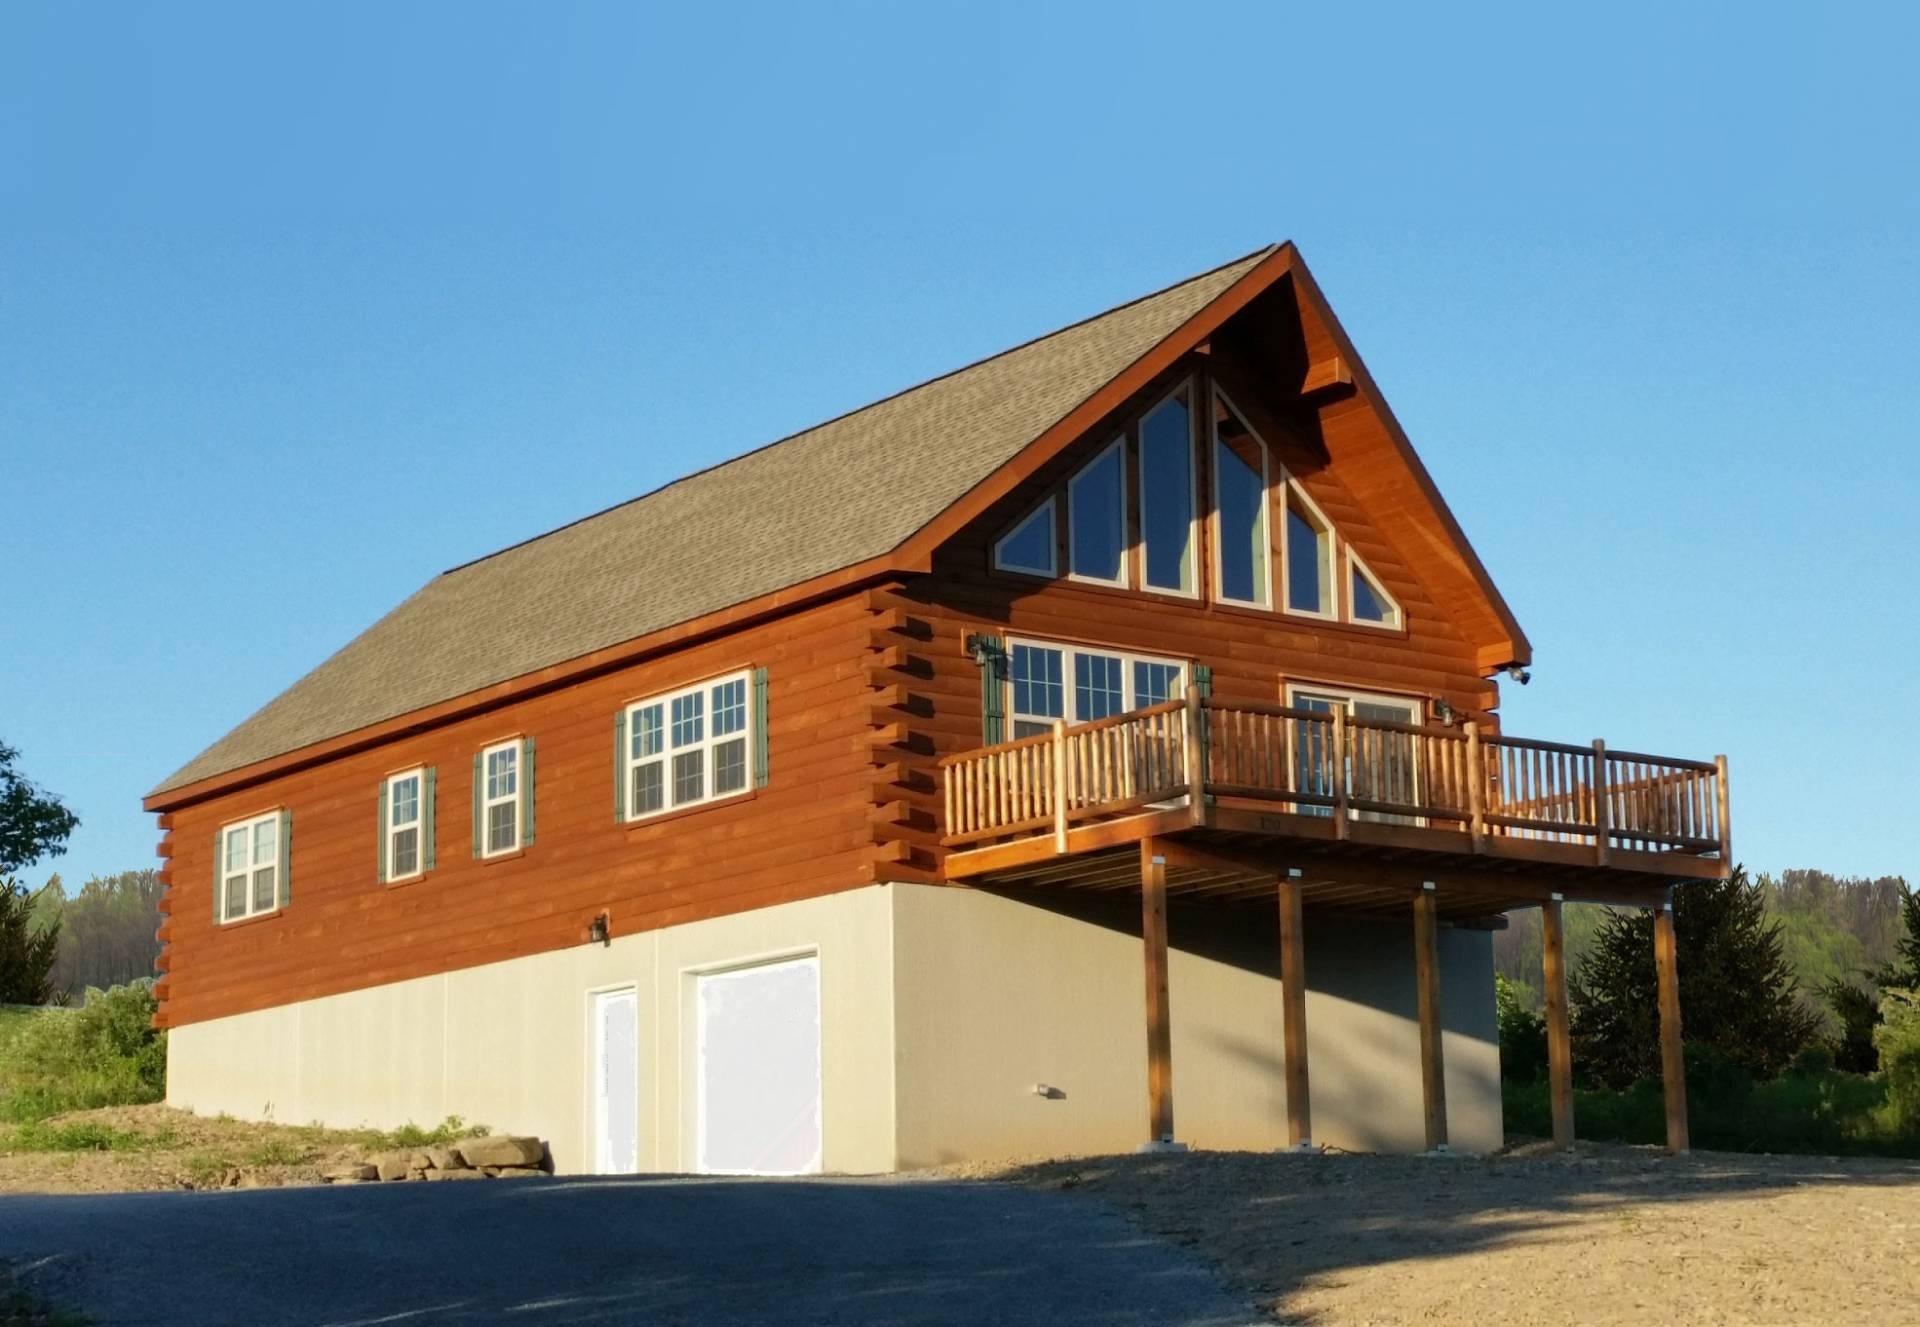 Chalet cozy cabins llc for Chalet manufactured homes